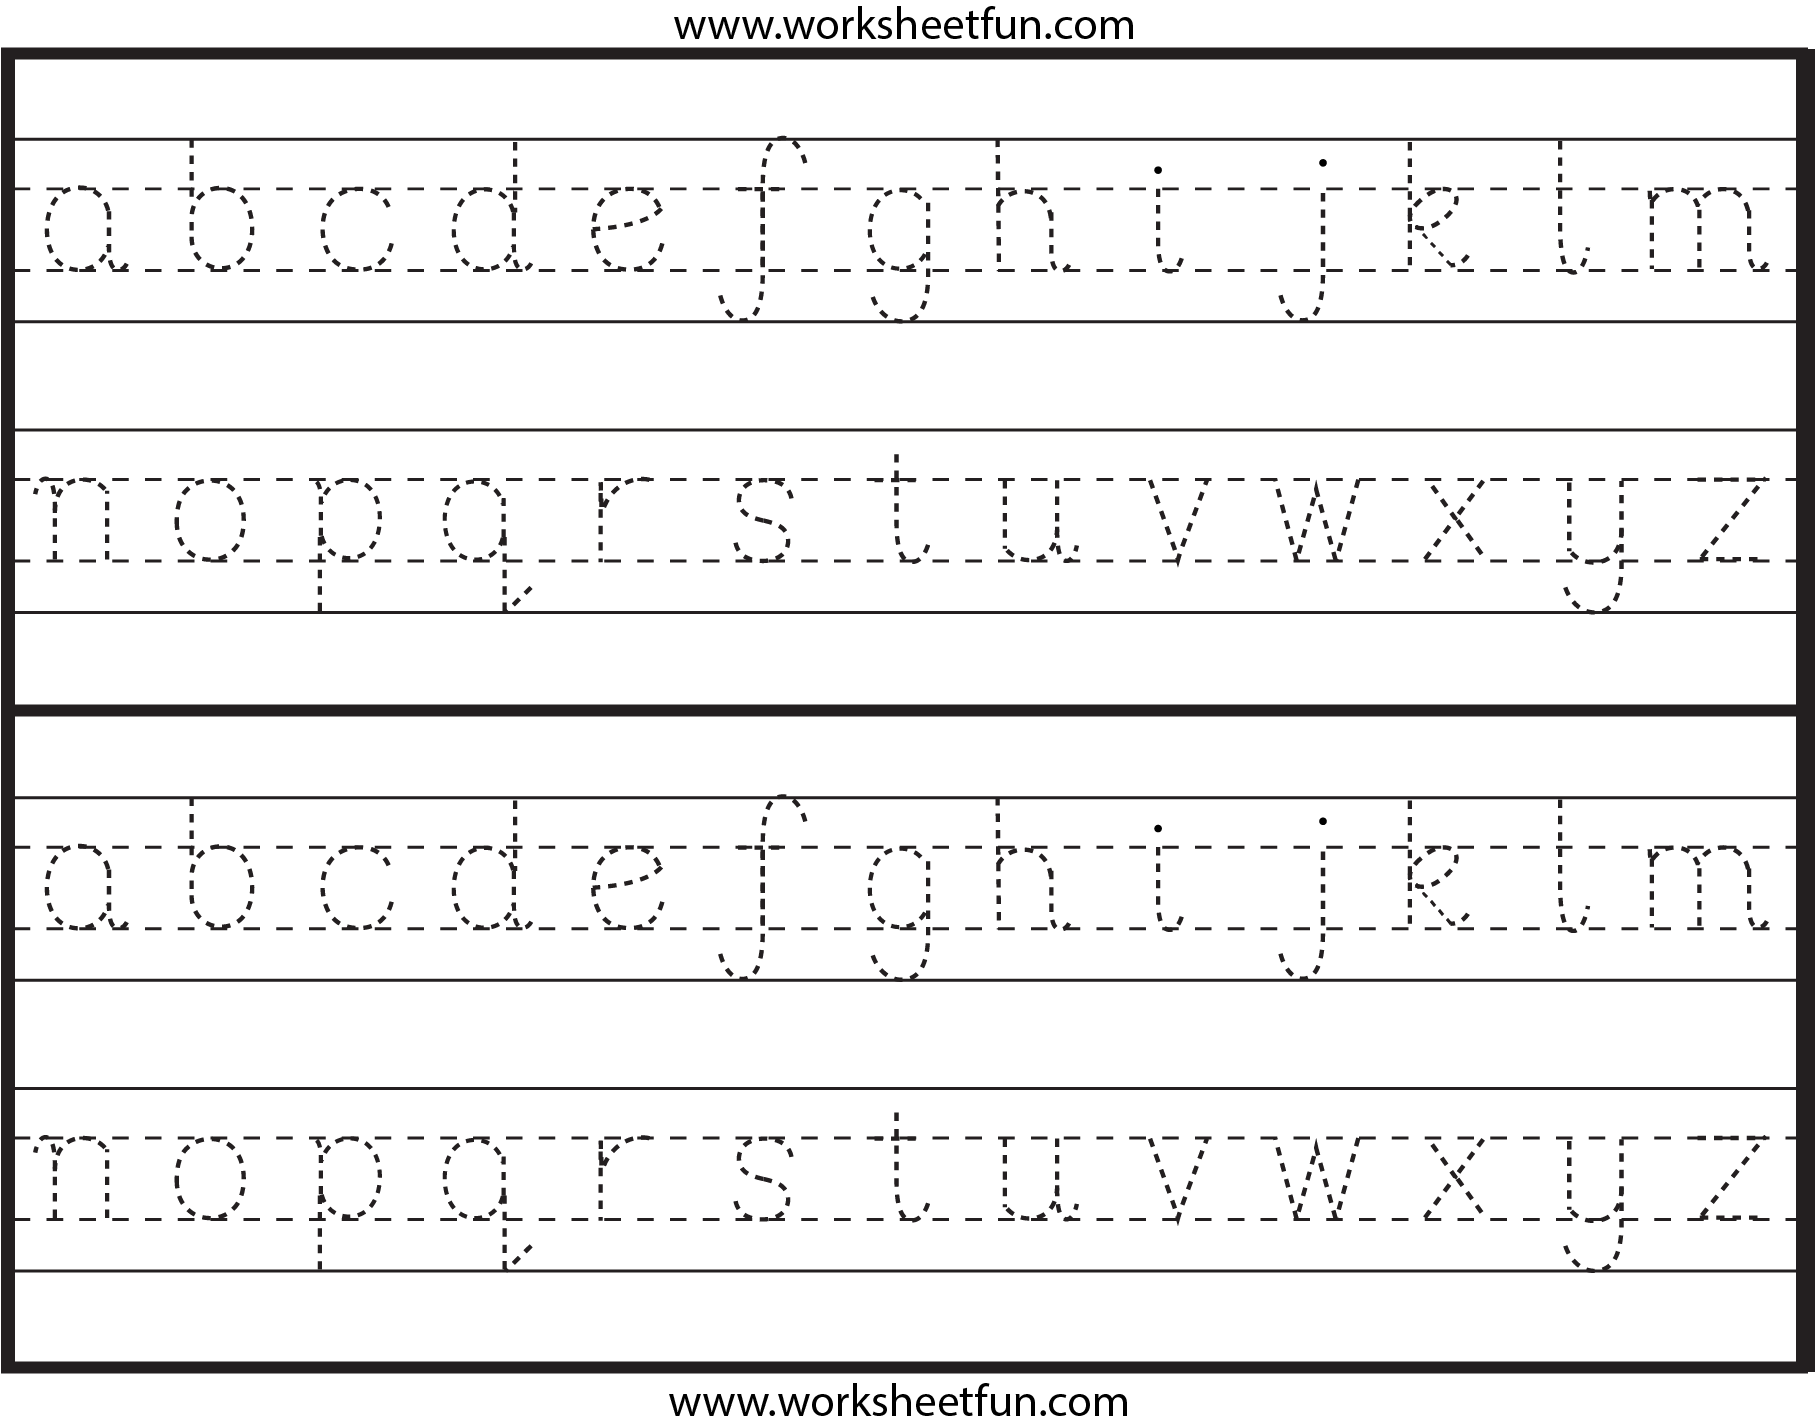 Worksheet Alphabet Writing Worksheets of trace the alphabet worksheet sharebrowse collection sharebrowse